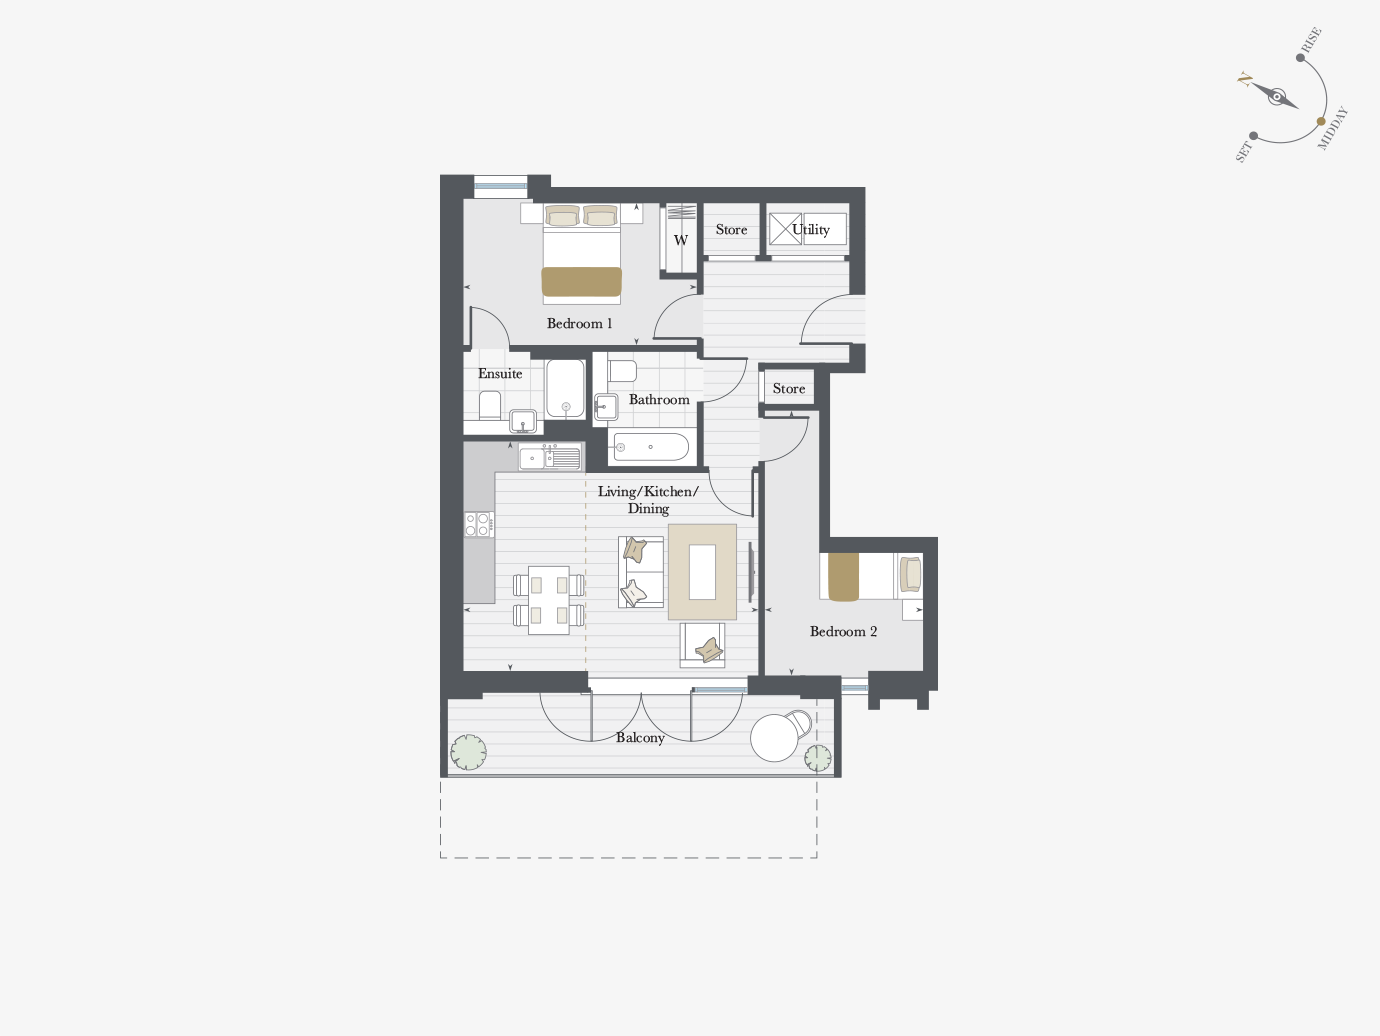 Floorplan for Apartment P7/05 at City Wharf, Seventh